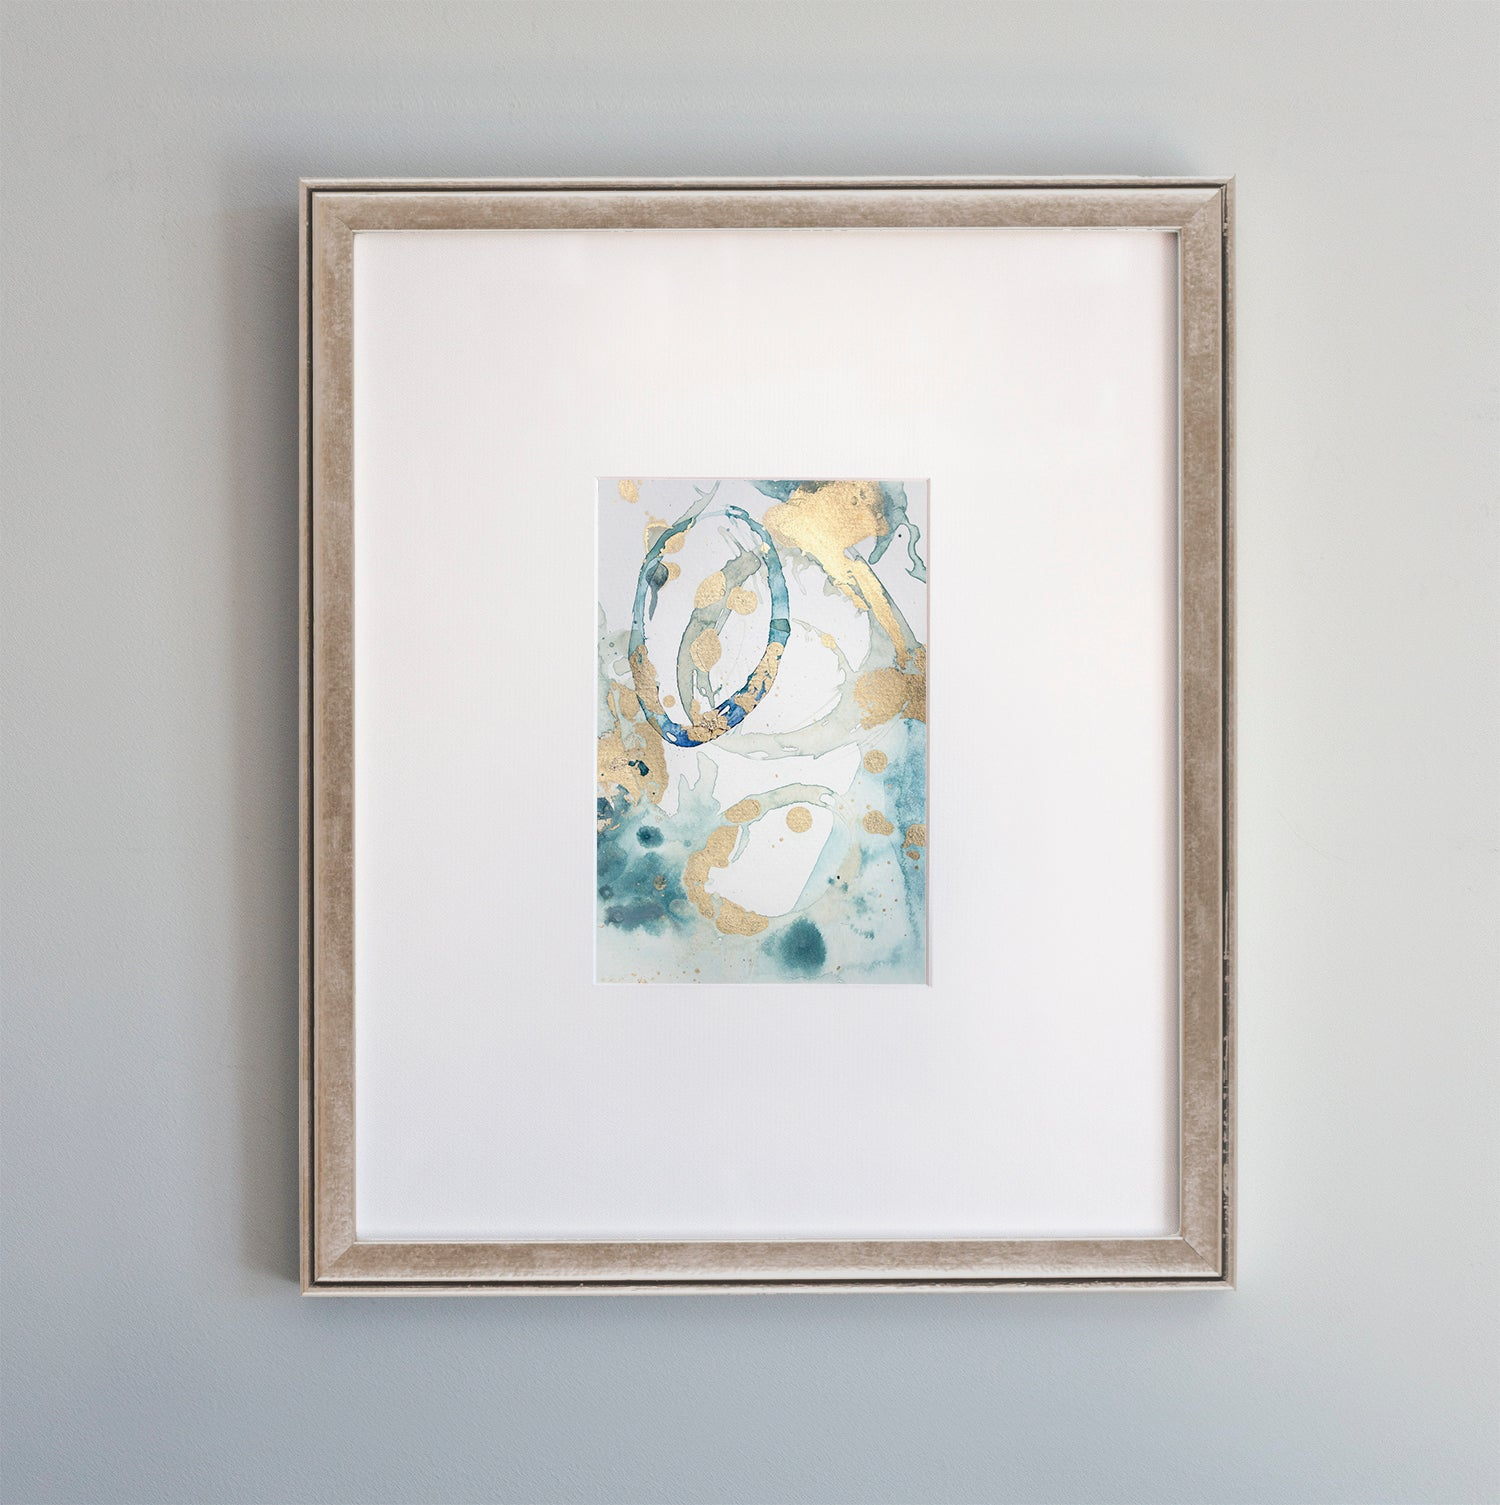 Original painting Enchantment No. 1 by Julia Contacessi - metallic frame option